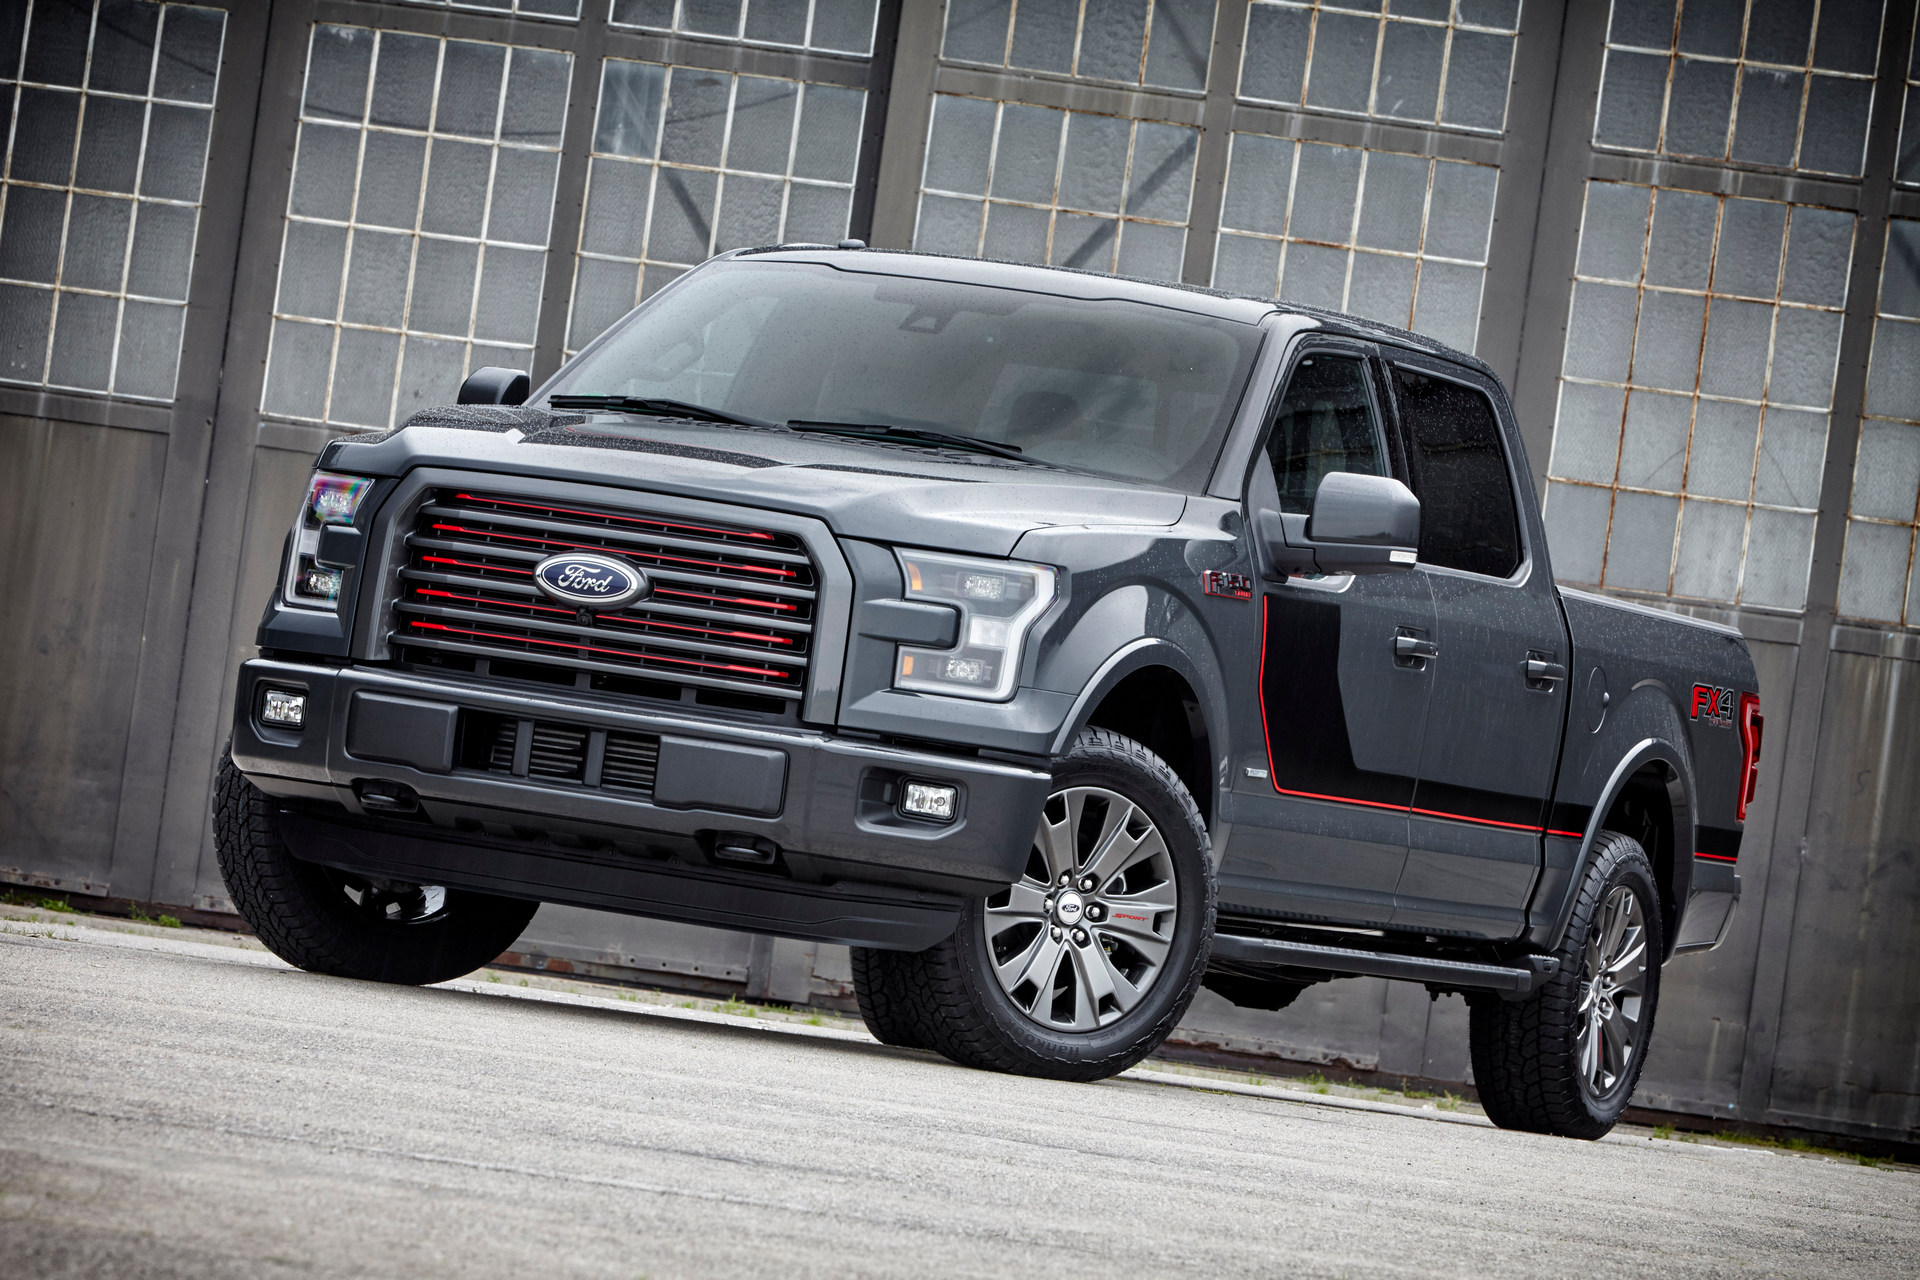 2016 Ford F-150 © Ford Motor Company